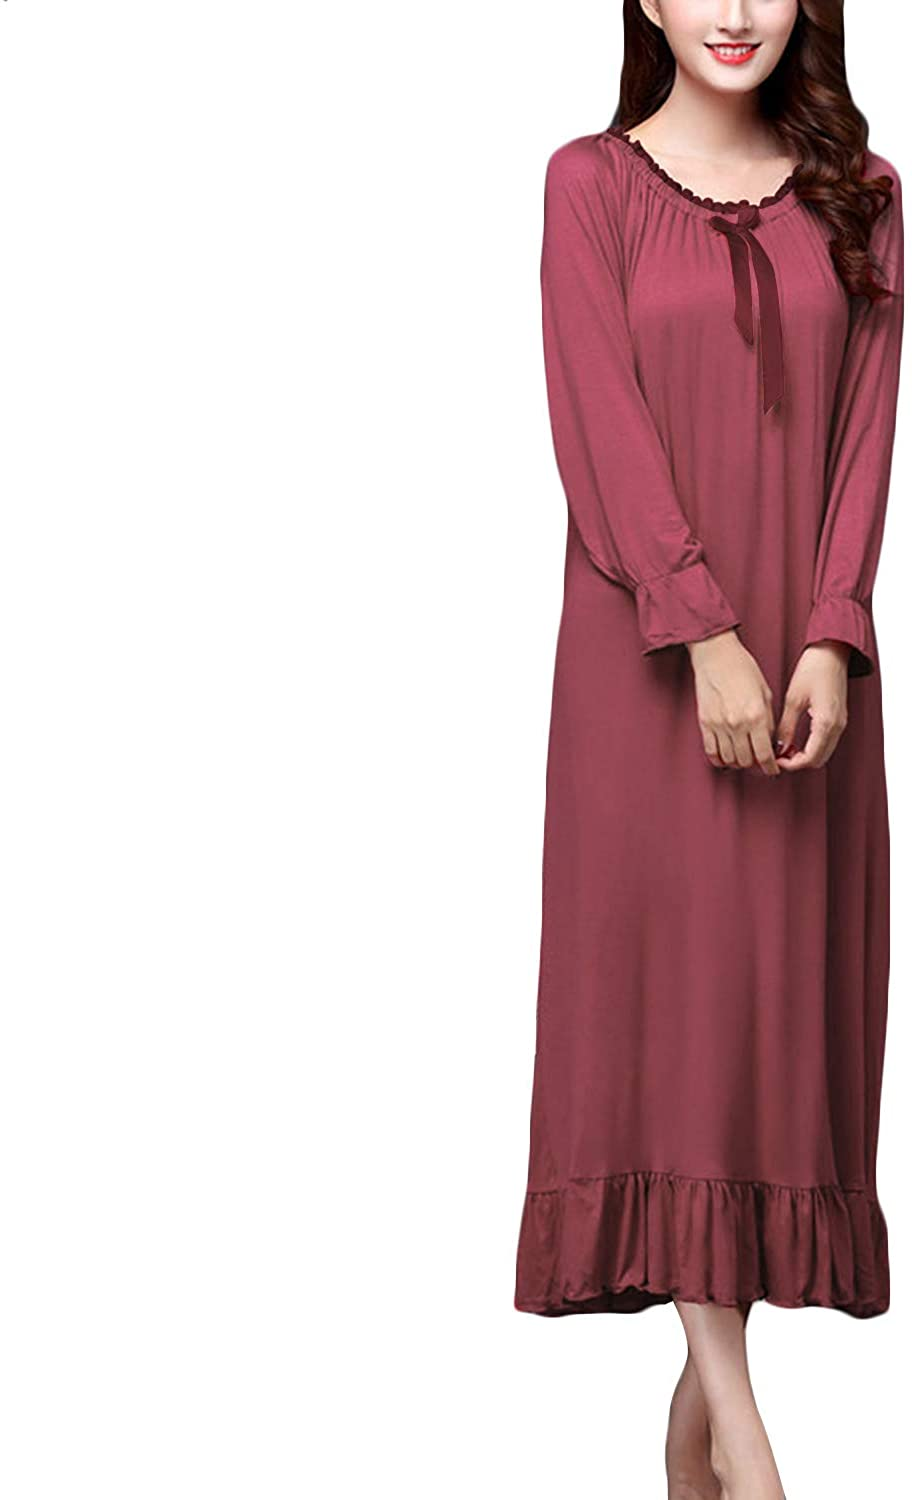 Lu's Chic Women's Victorian Nightgown Long Sleeves Cotton Sleep Dress Vintage Ruched Nighty